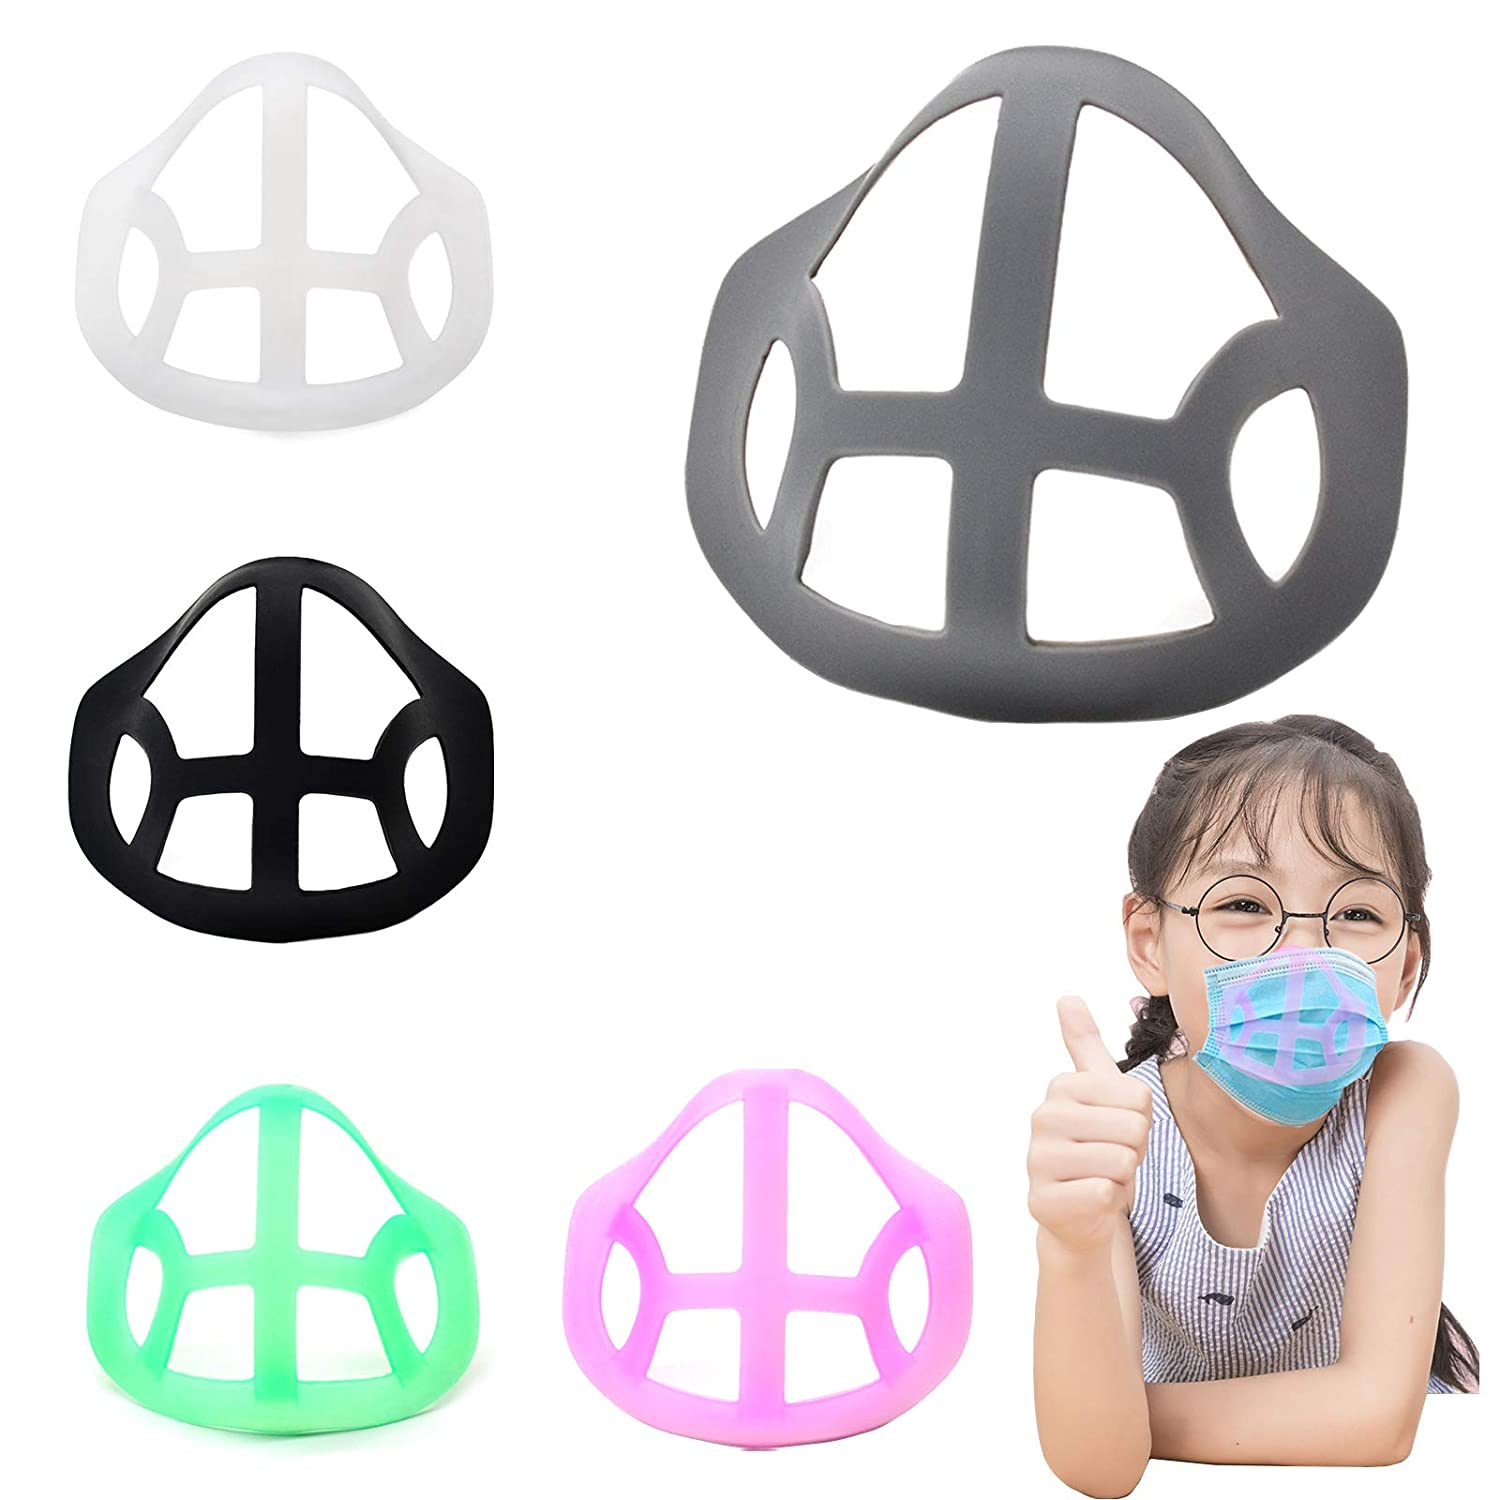 3D Child Silicone Mask Bracket Ver2.0, [Food-Grade] High Temperature Resistance, Nternal Support Holder Frame Nose Breathing Smoothly, Ultra-Light and Comfortable,Specially Designed for Kid.